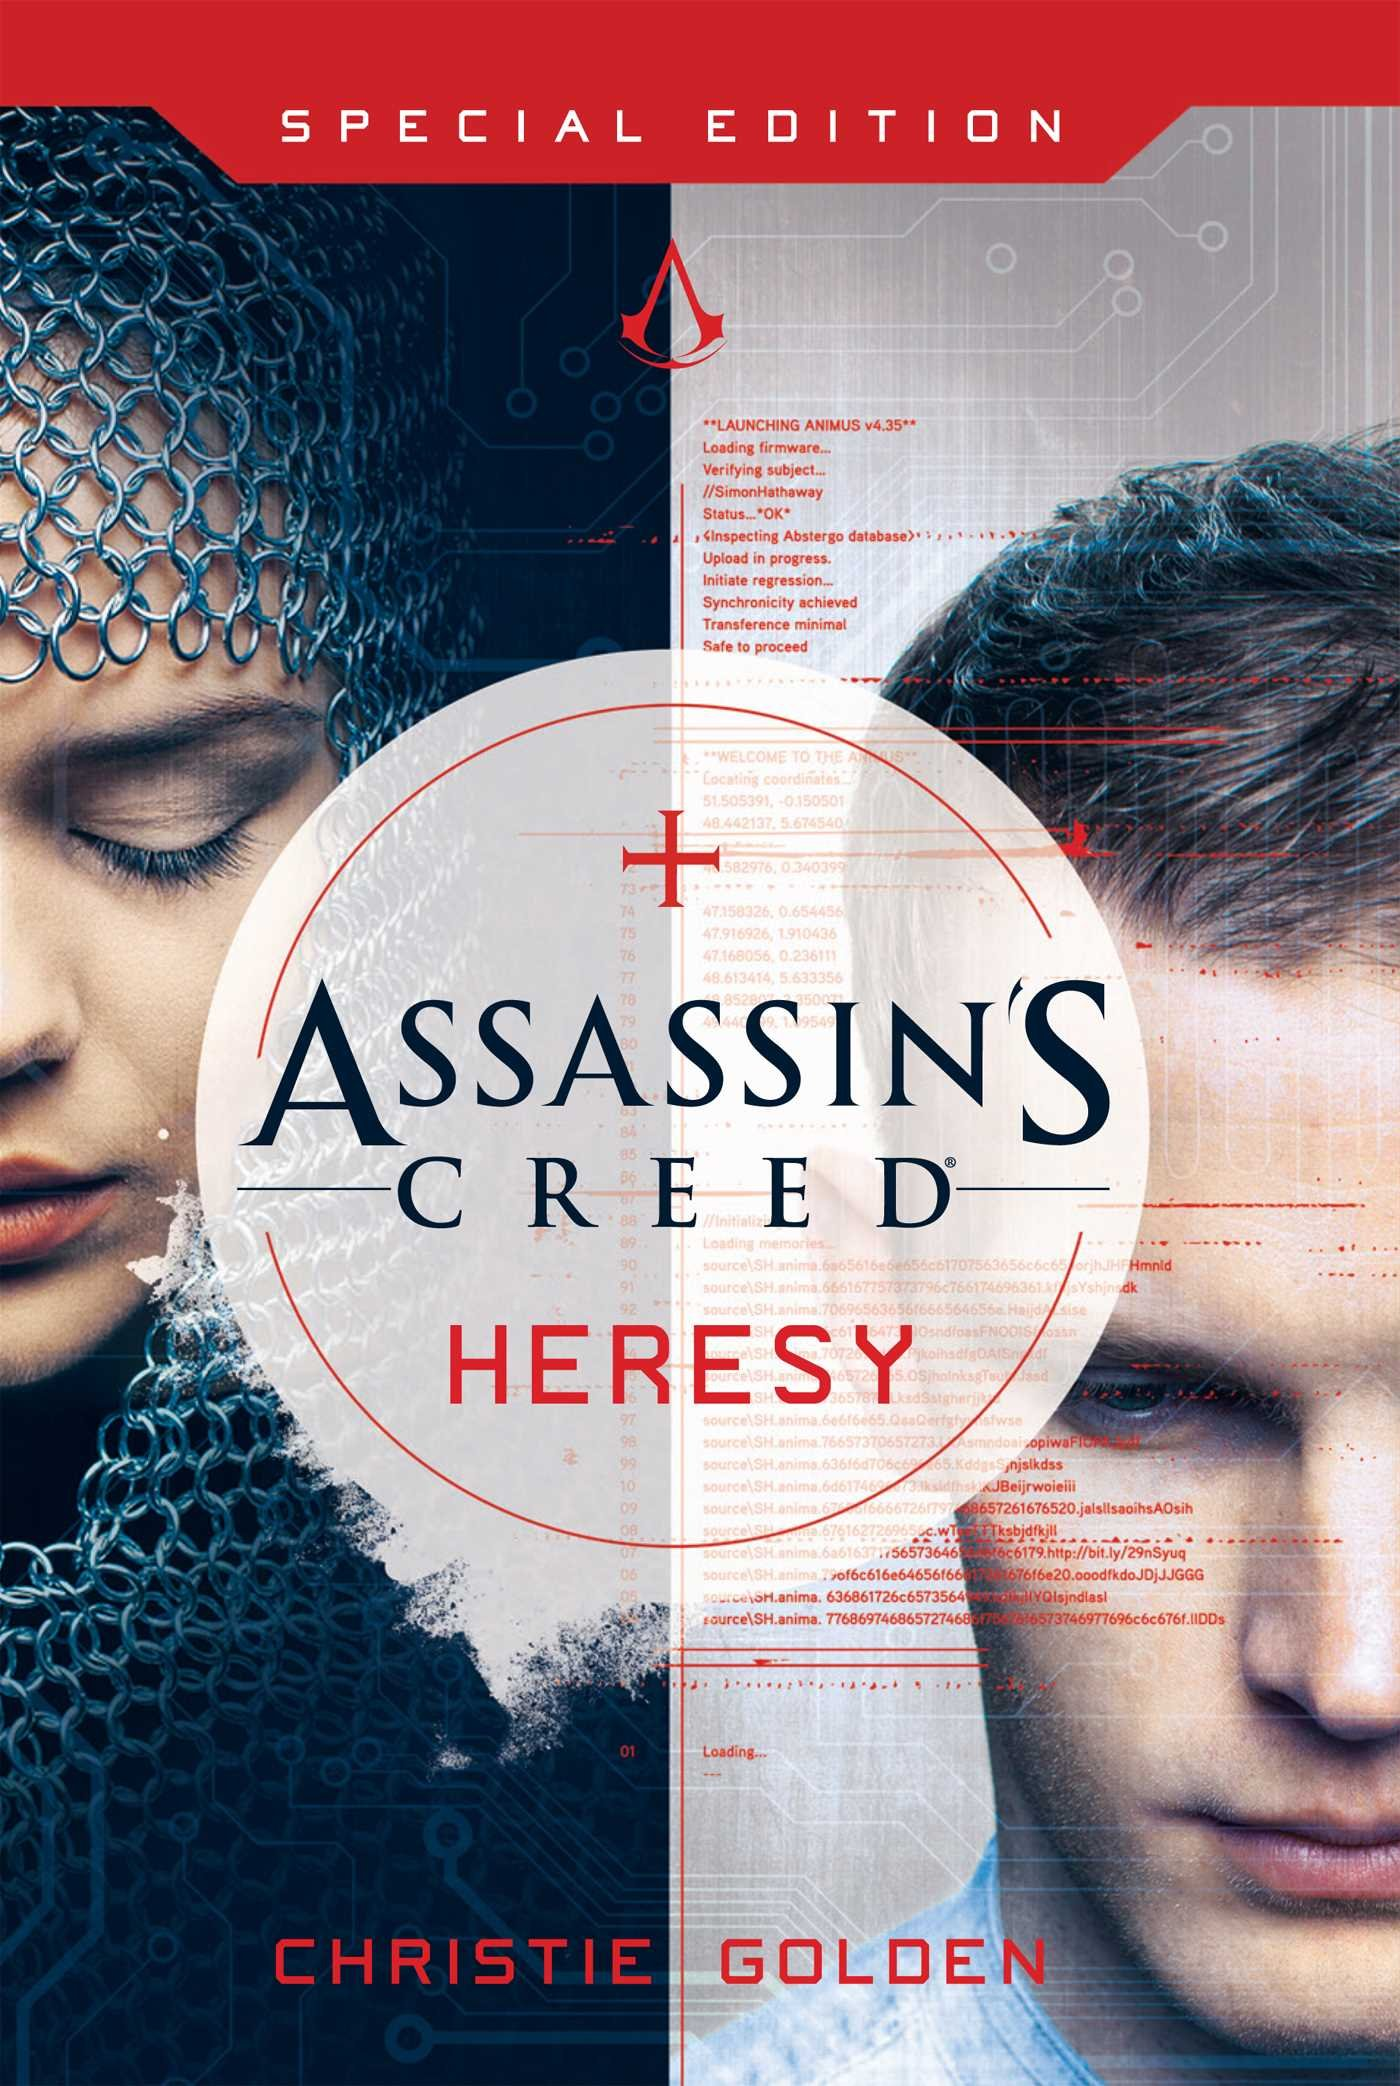 abbastanza Assassin's Creed: Heresy - Special Edition: Christie Golden  GL63